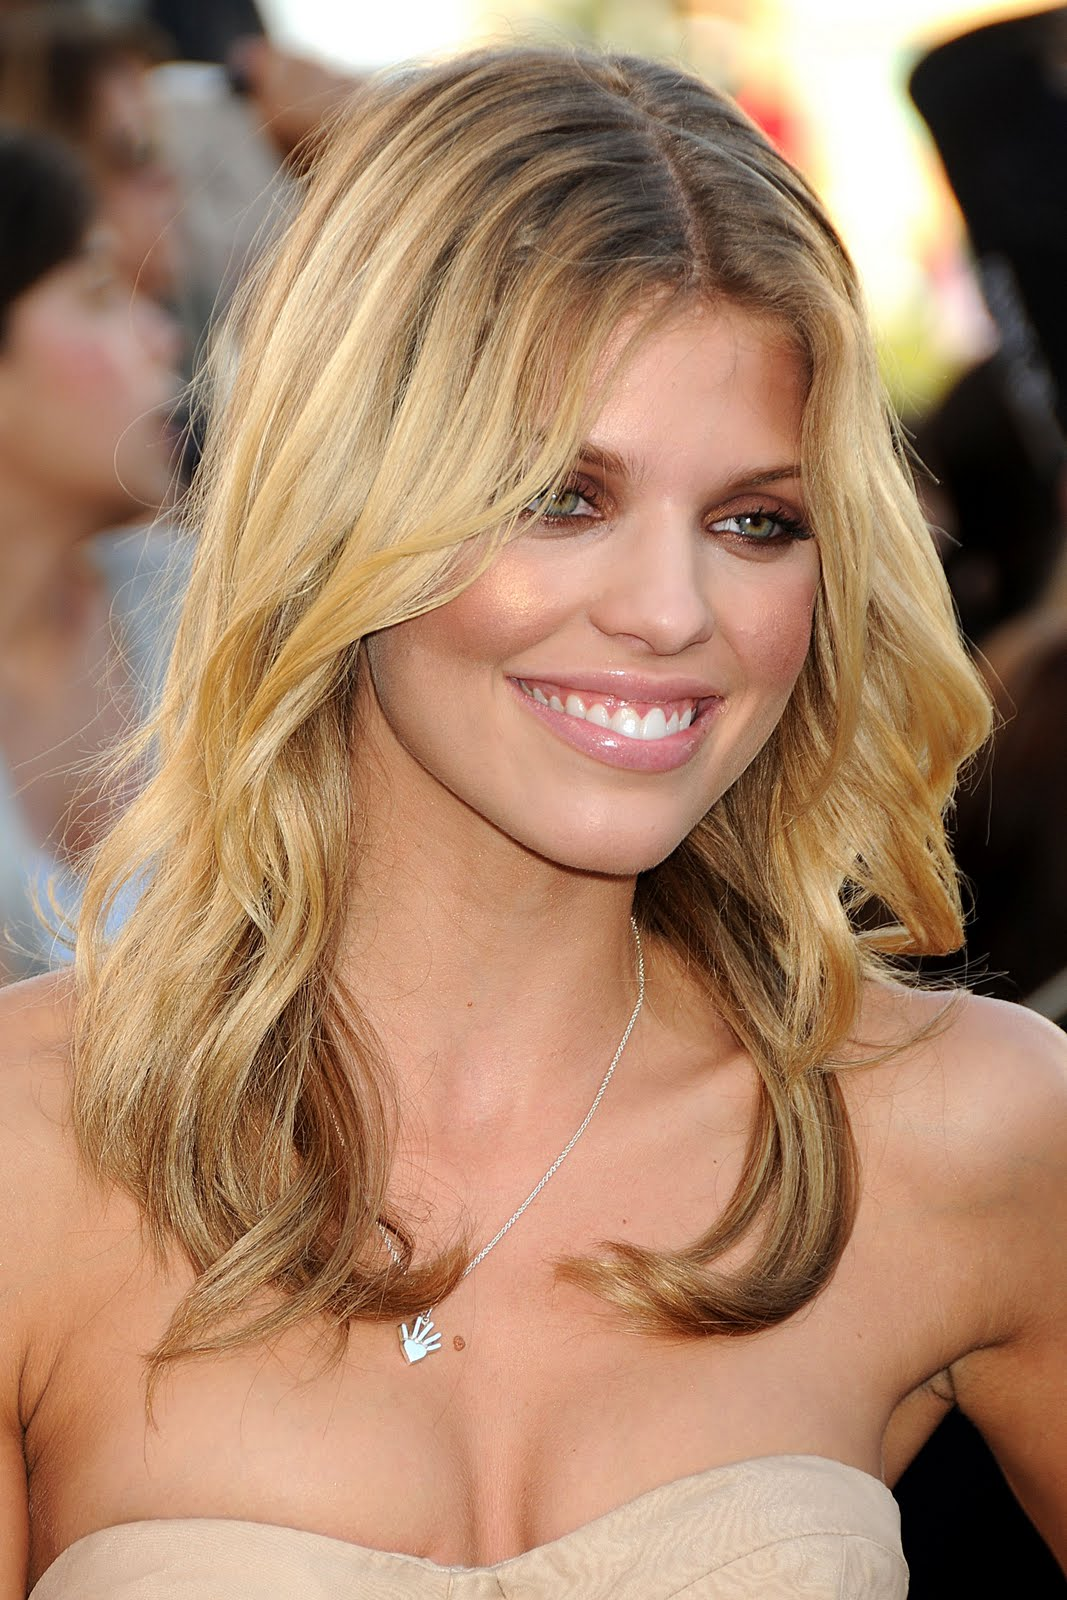 Wallpaper World: AnnaLynne McCord Beautiful Cleavage